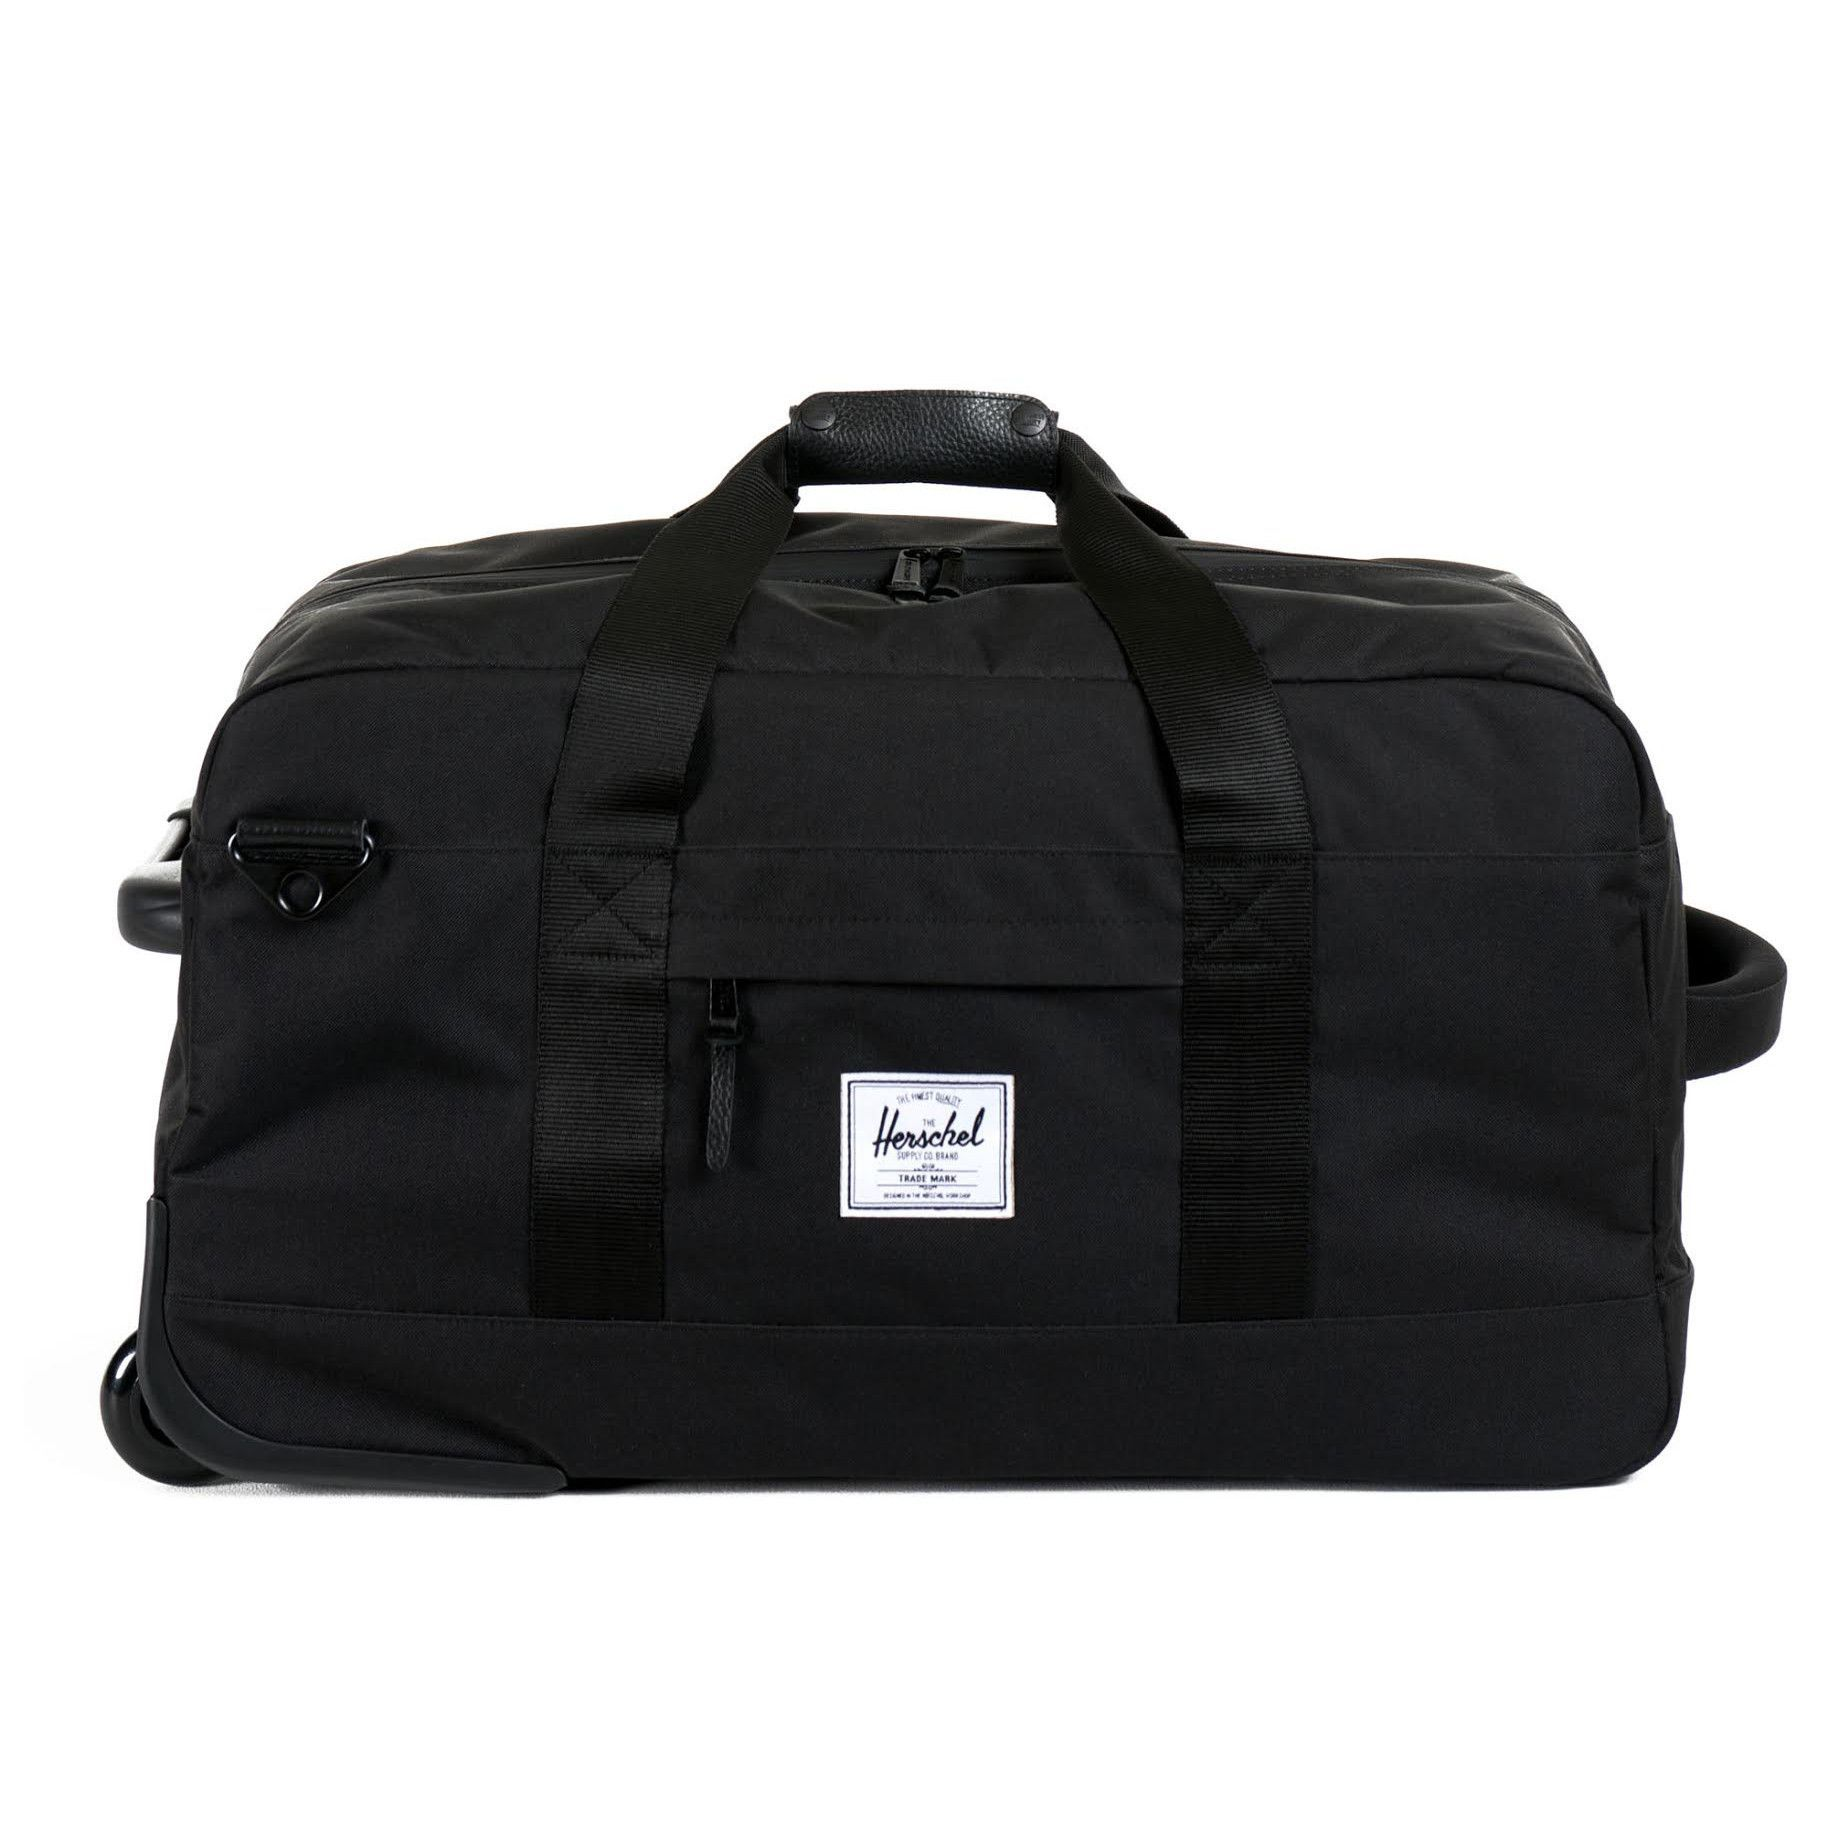 Herschel Supply Co. Outfitter Wheelie Luggage - Black | Products ...